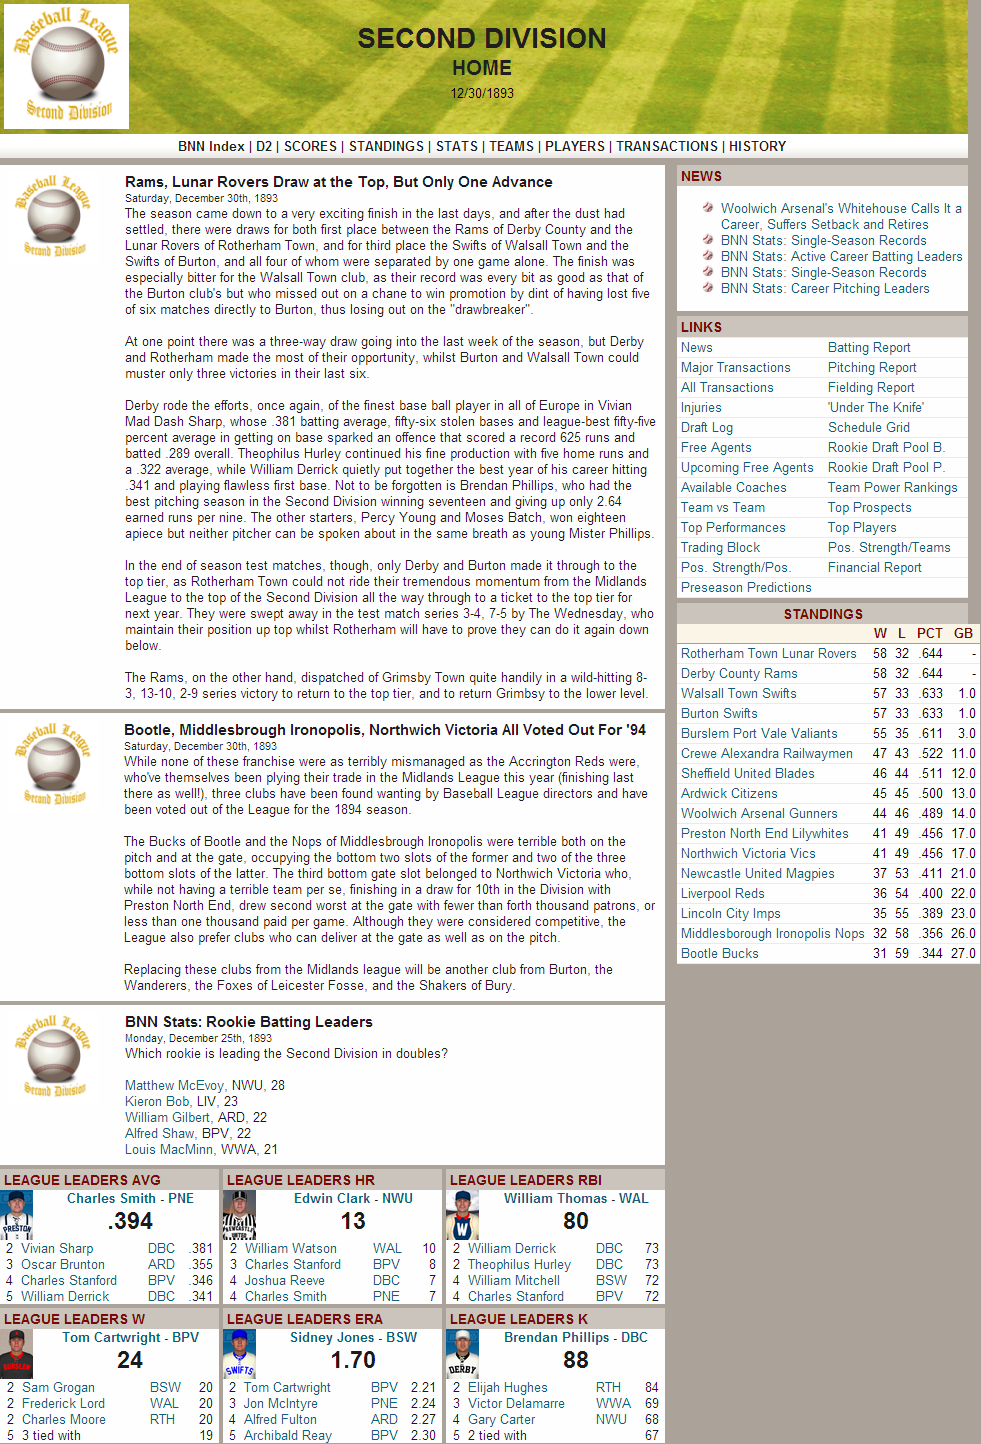 Name:  1893 D2 League Home Almanac.png